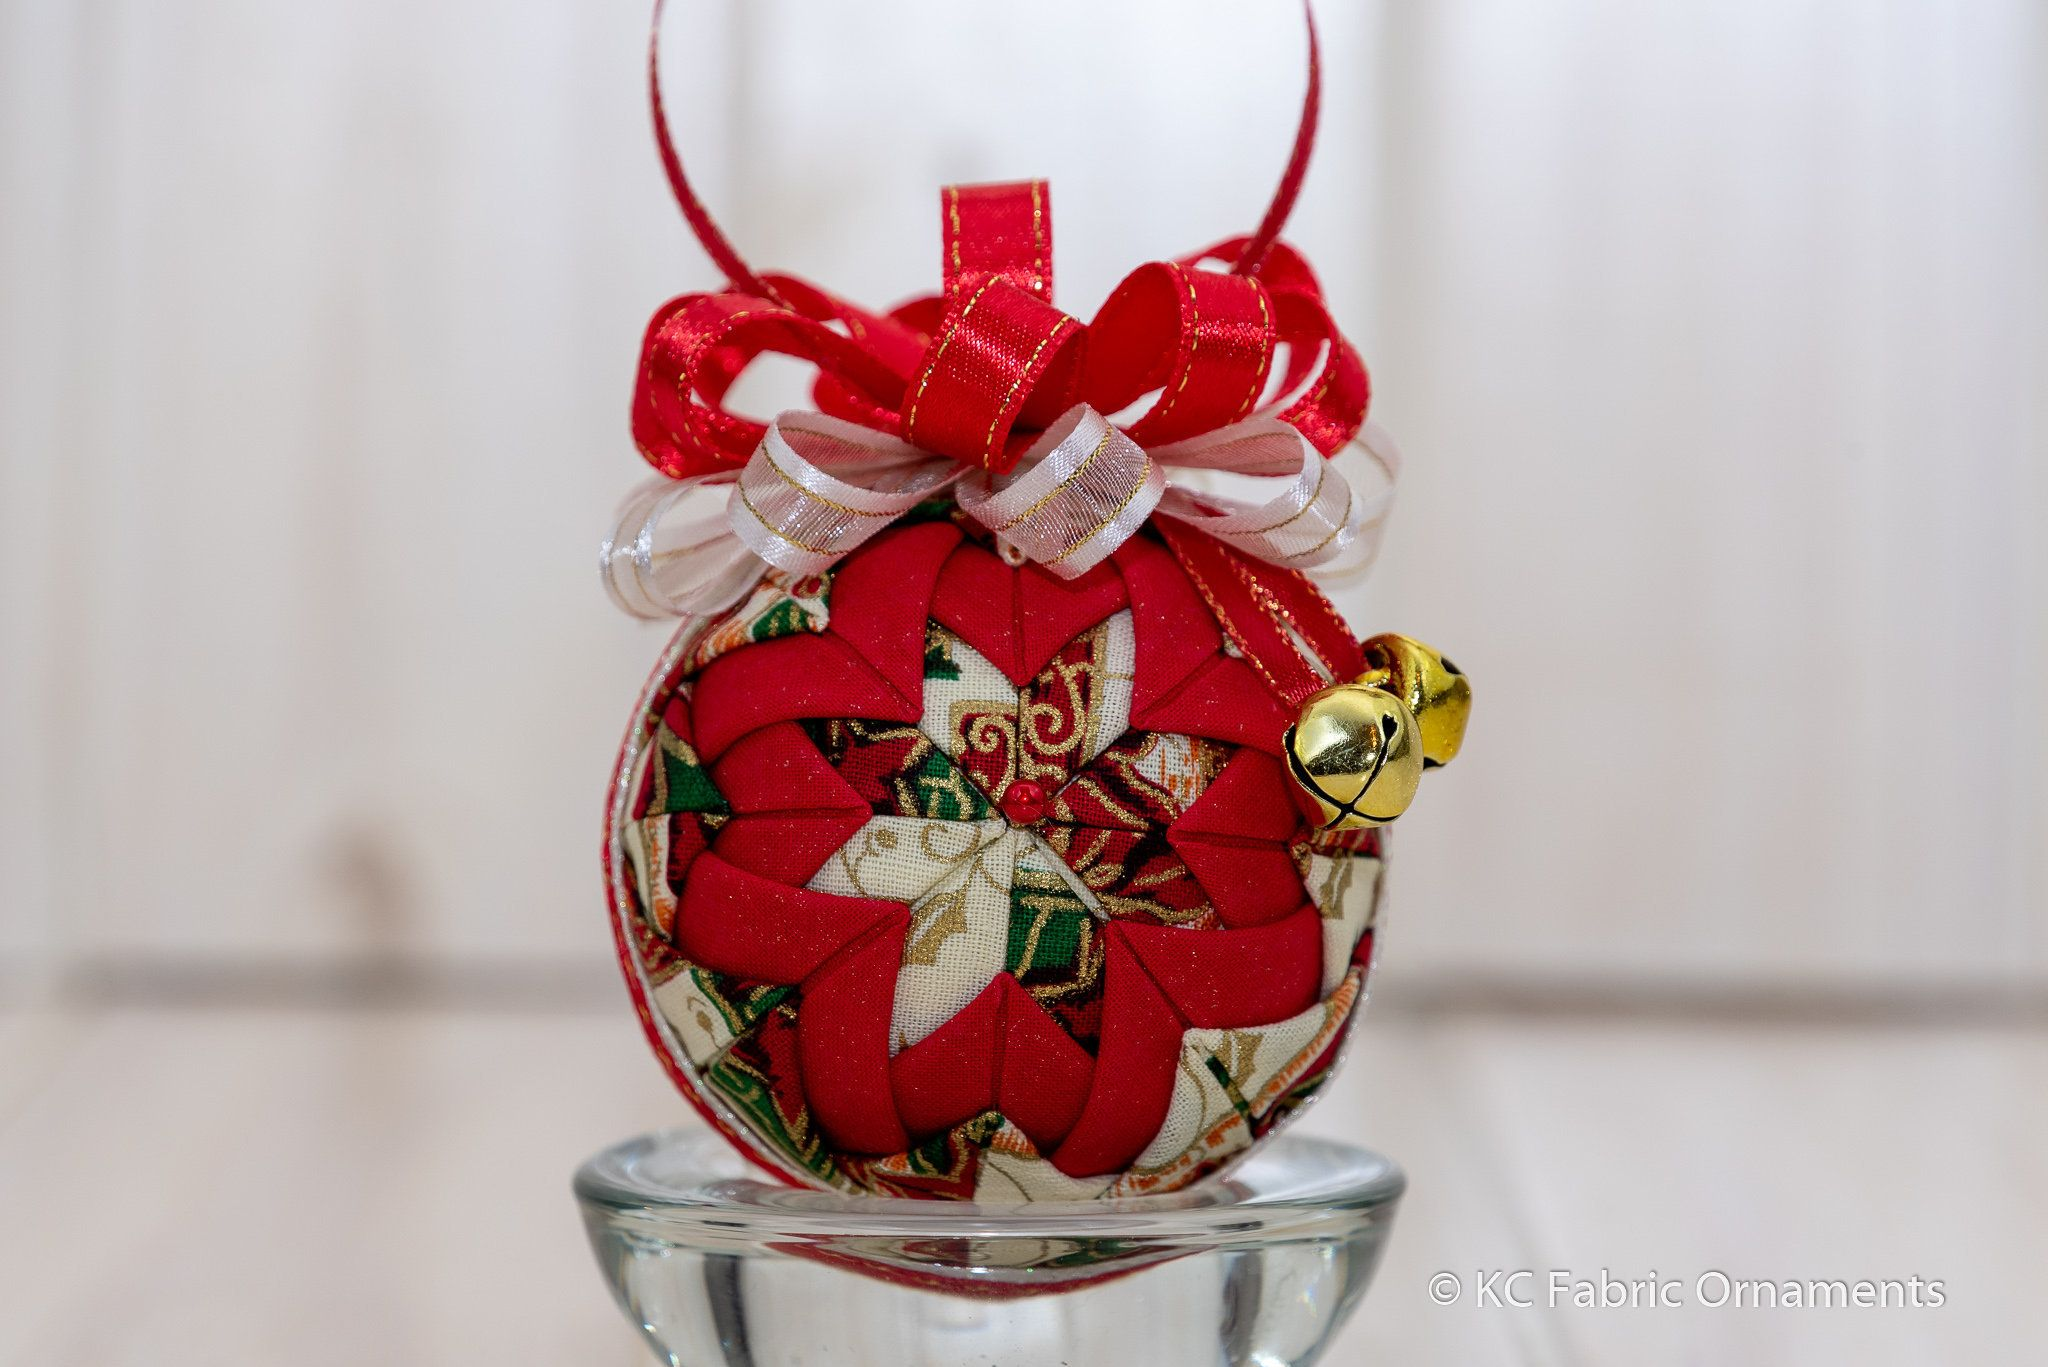 Quilted Ornament Folded Fabric Christmas Ornament Metallic Poinsettia Fabric And Red Sparkle Fa Fabric Ornaments Quilted Fabric Ornaments Quilted Ornaments